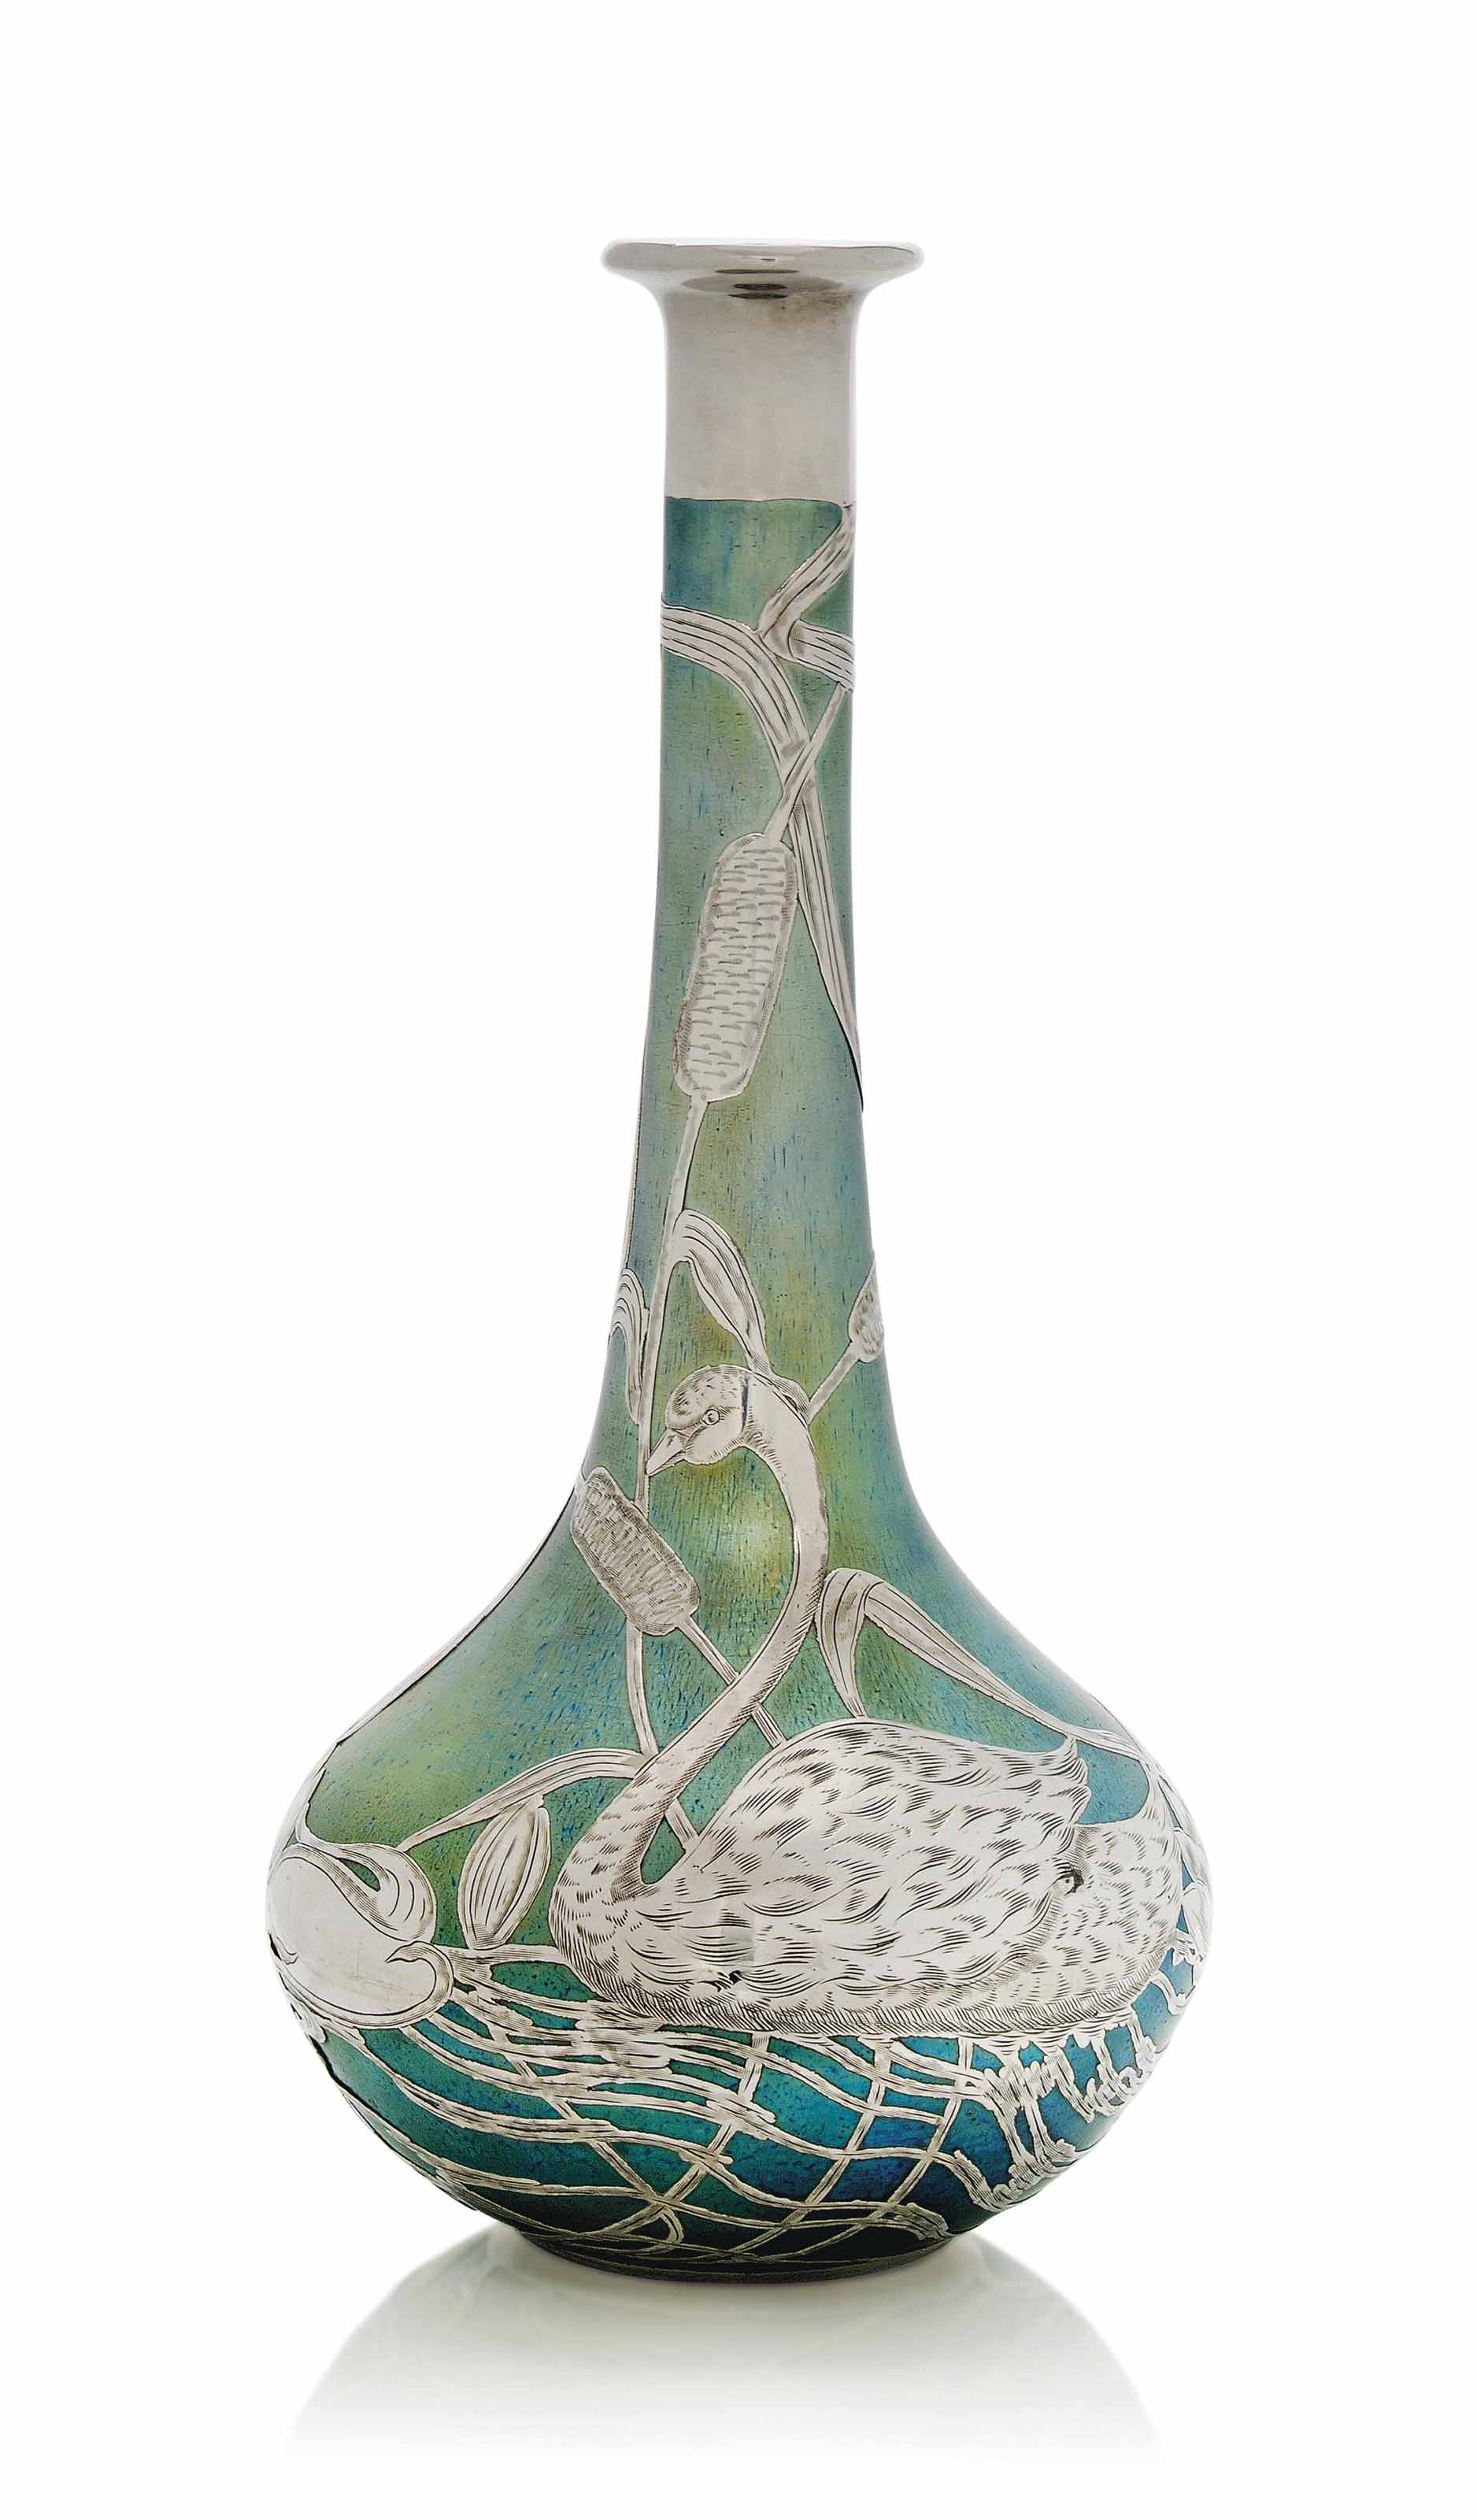 A LOETZ IRIDESCENT GLASS VASE WITH SILVER APPLIQUE